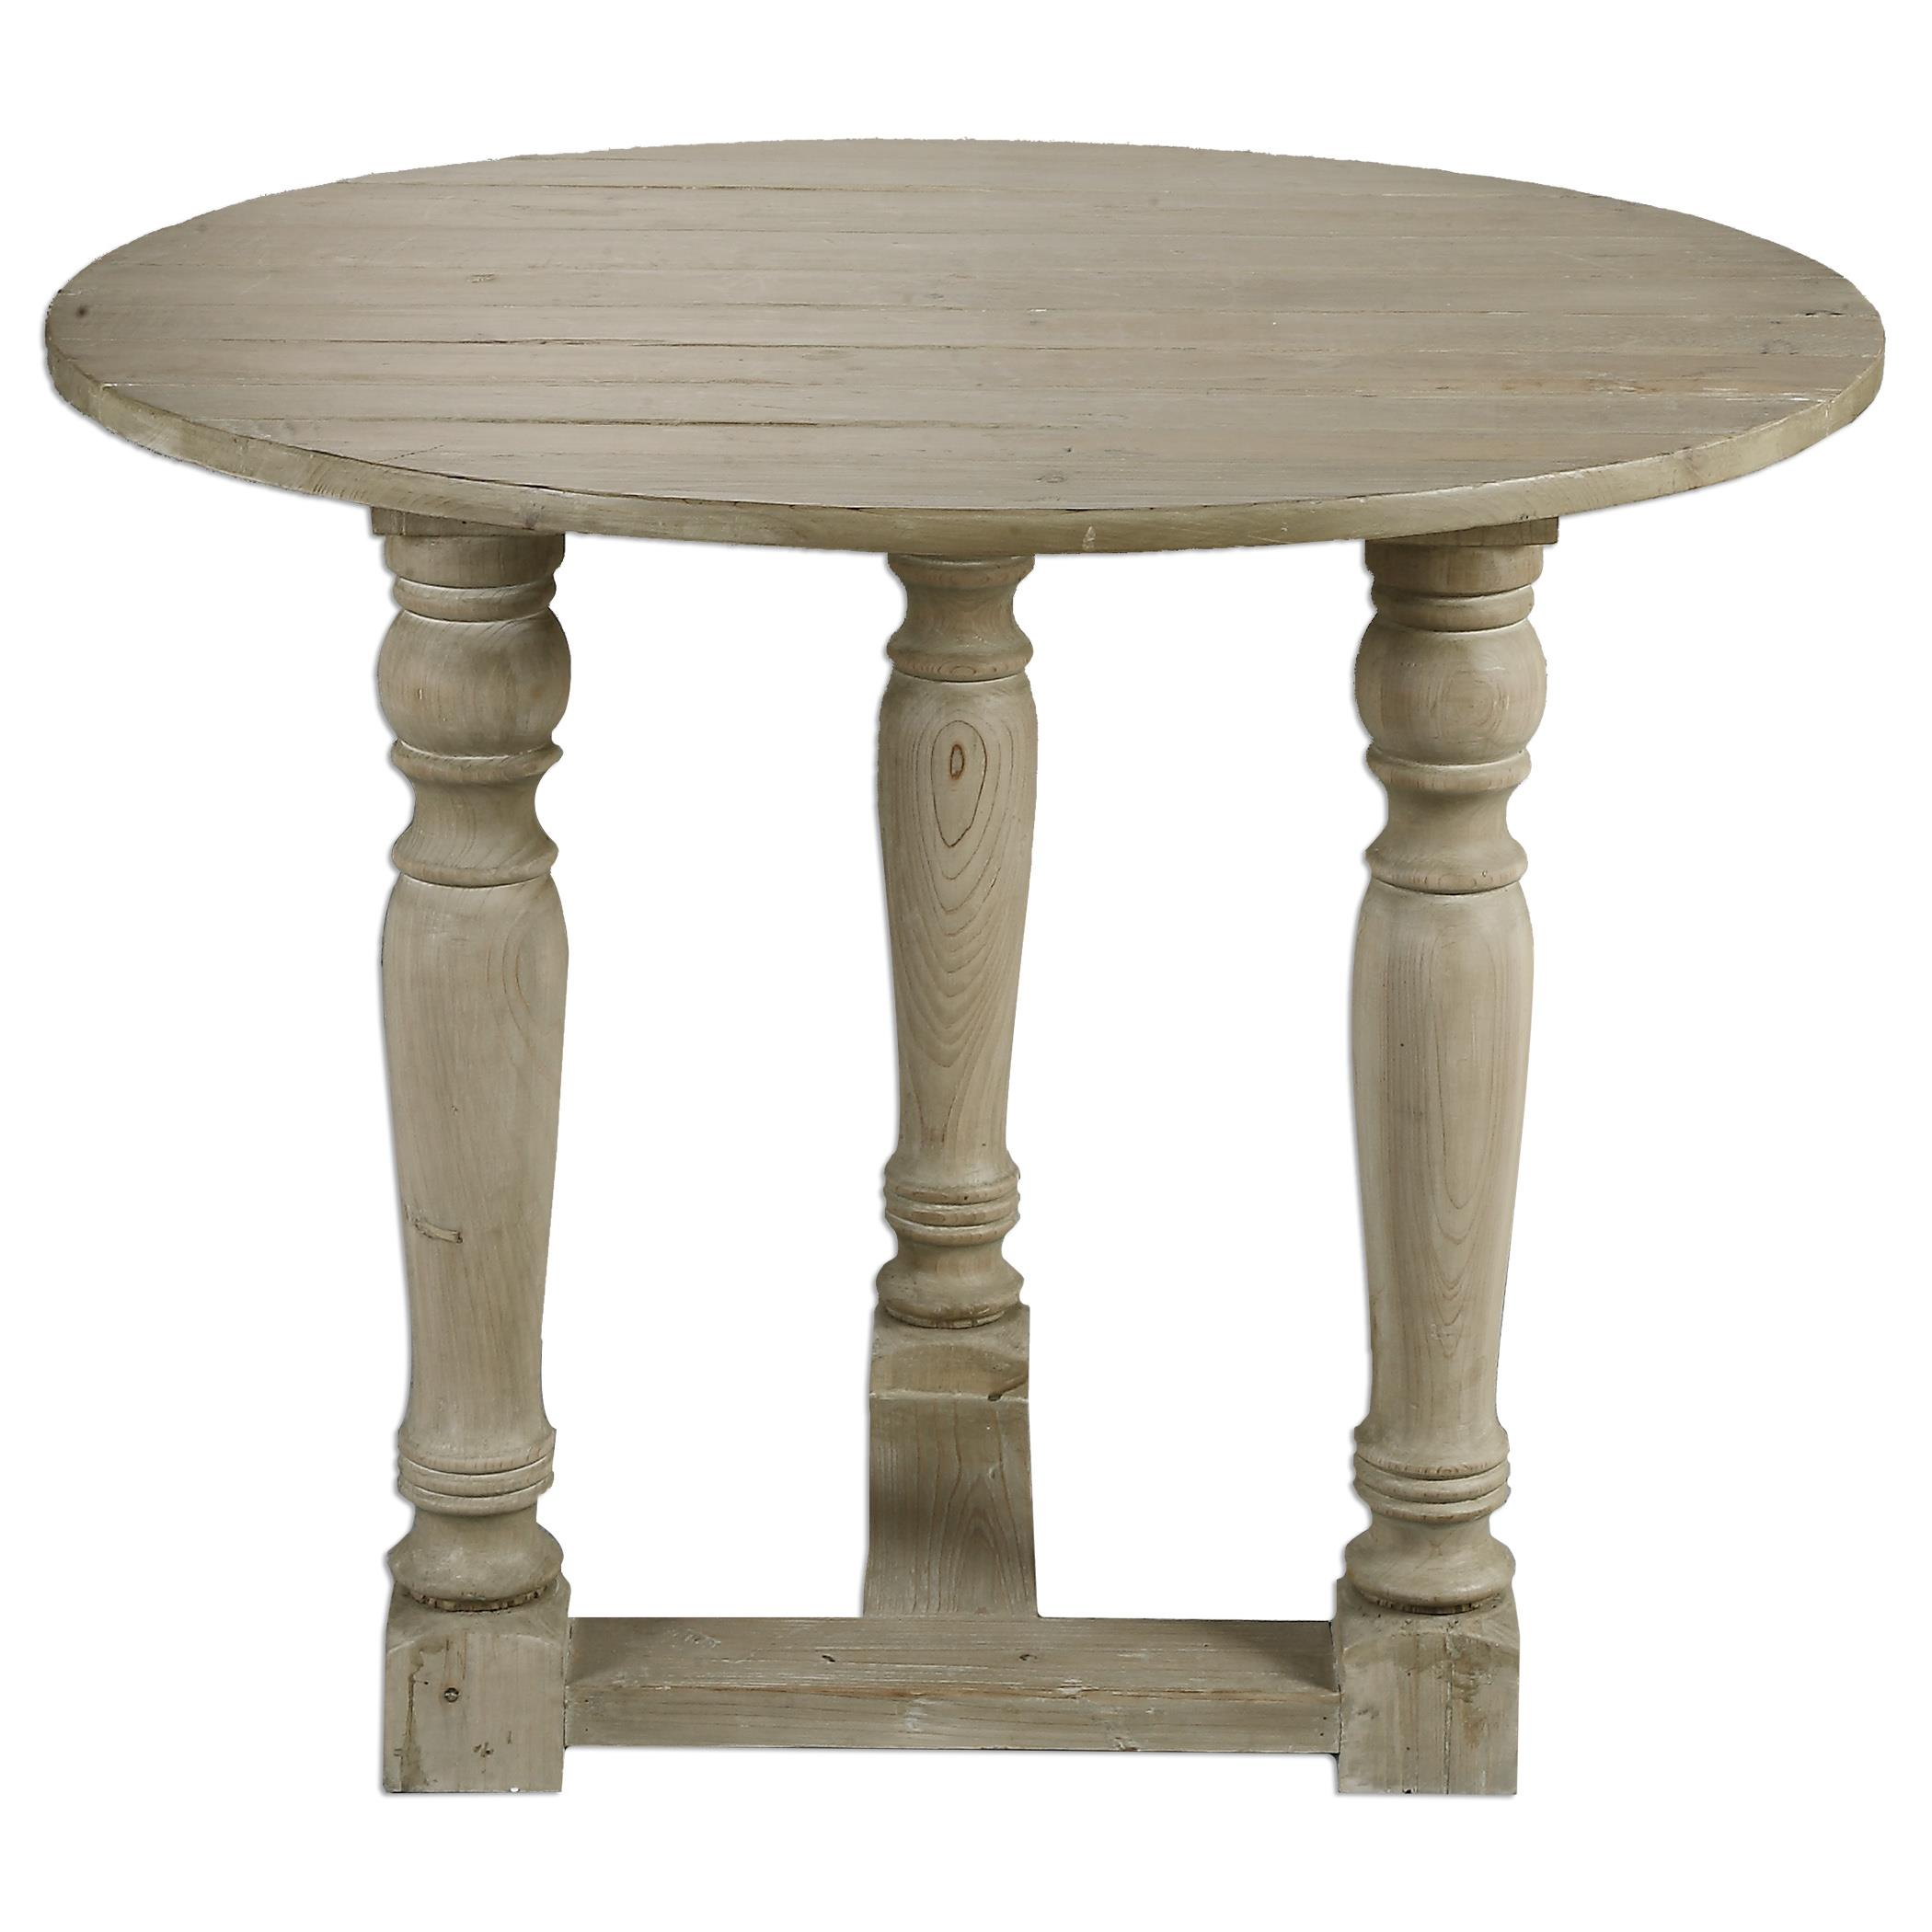 Uttermost Accent Furniture Hadwin Drop Leaf Table - Item Number: 24534